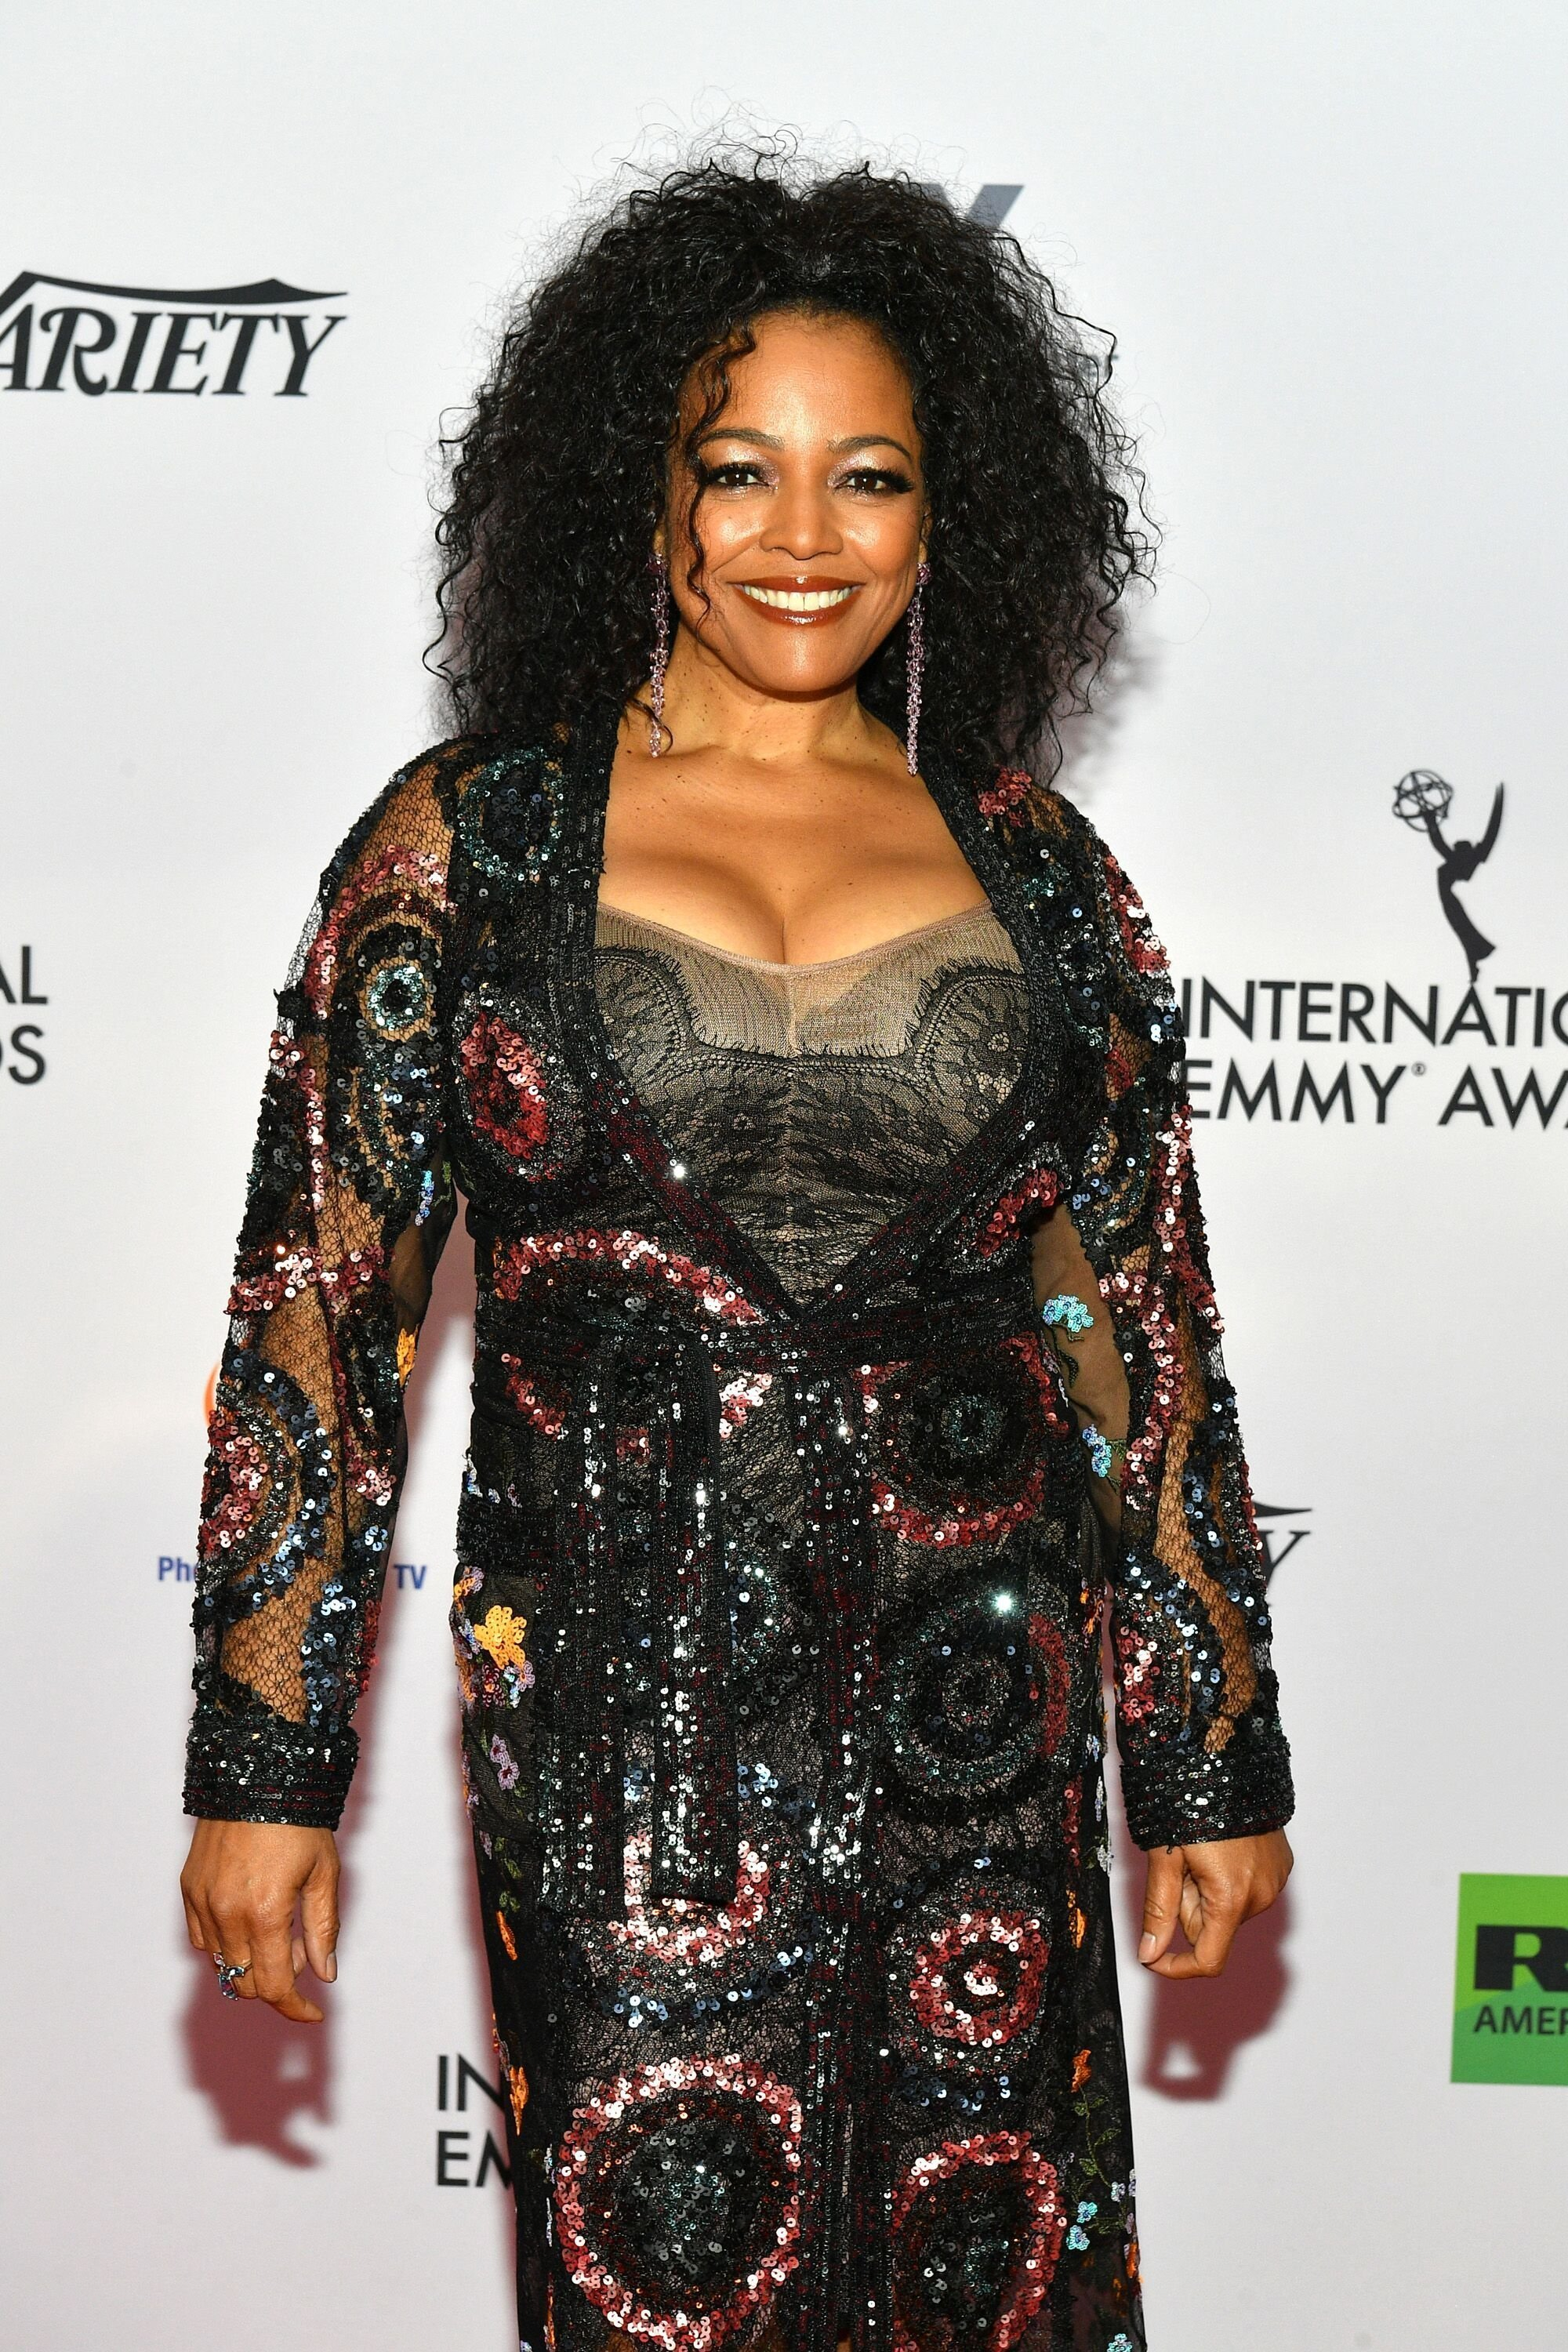 Kim Fields attends a red carpet event | Photo: Getty Images